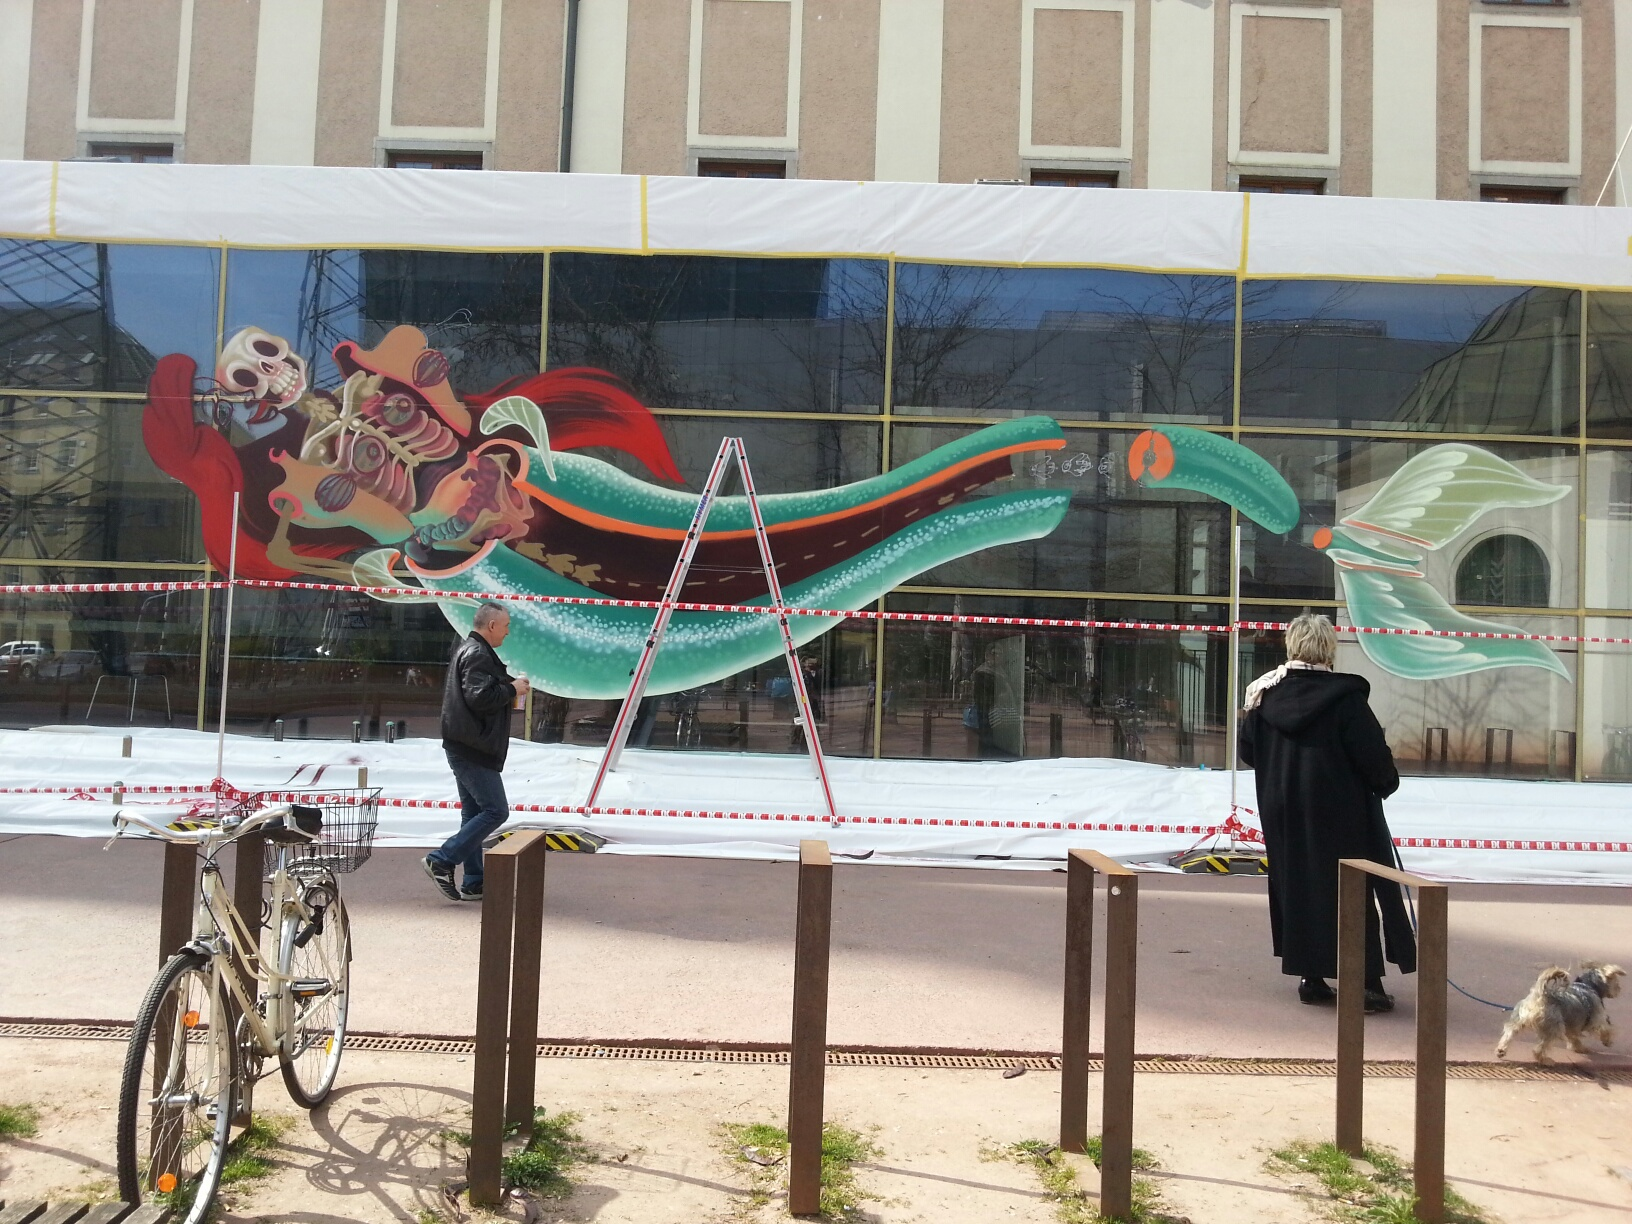 nychos-dissection-of-the-little-mermaid-new-mural-in-linz-03